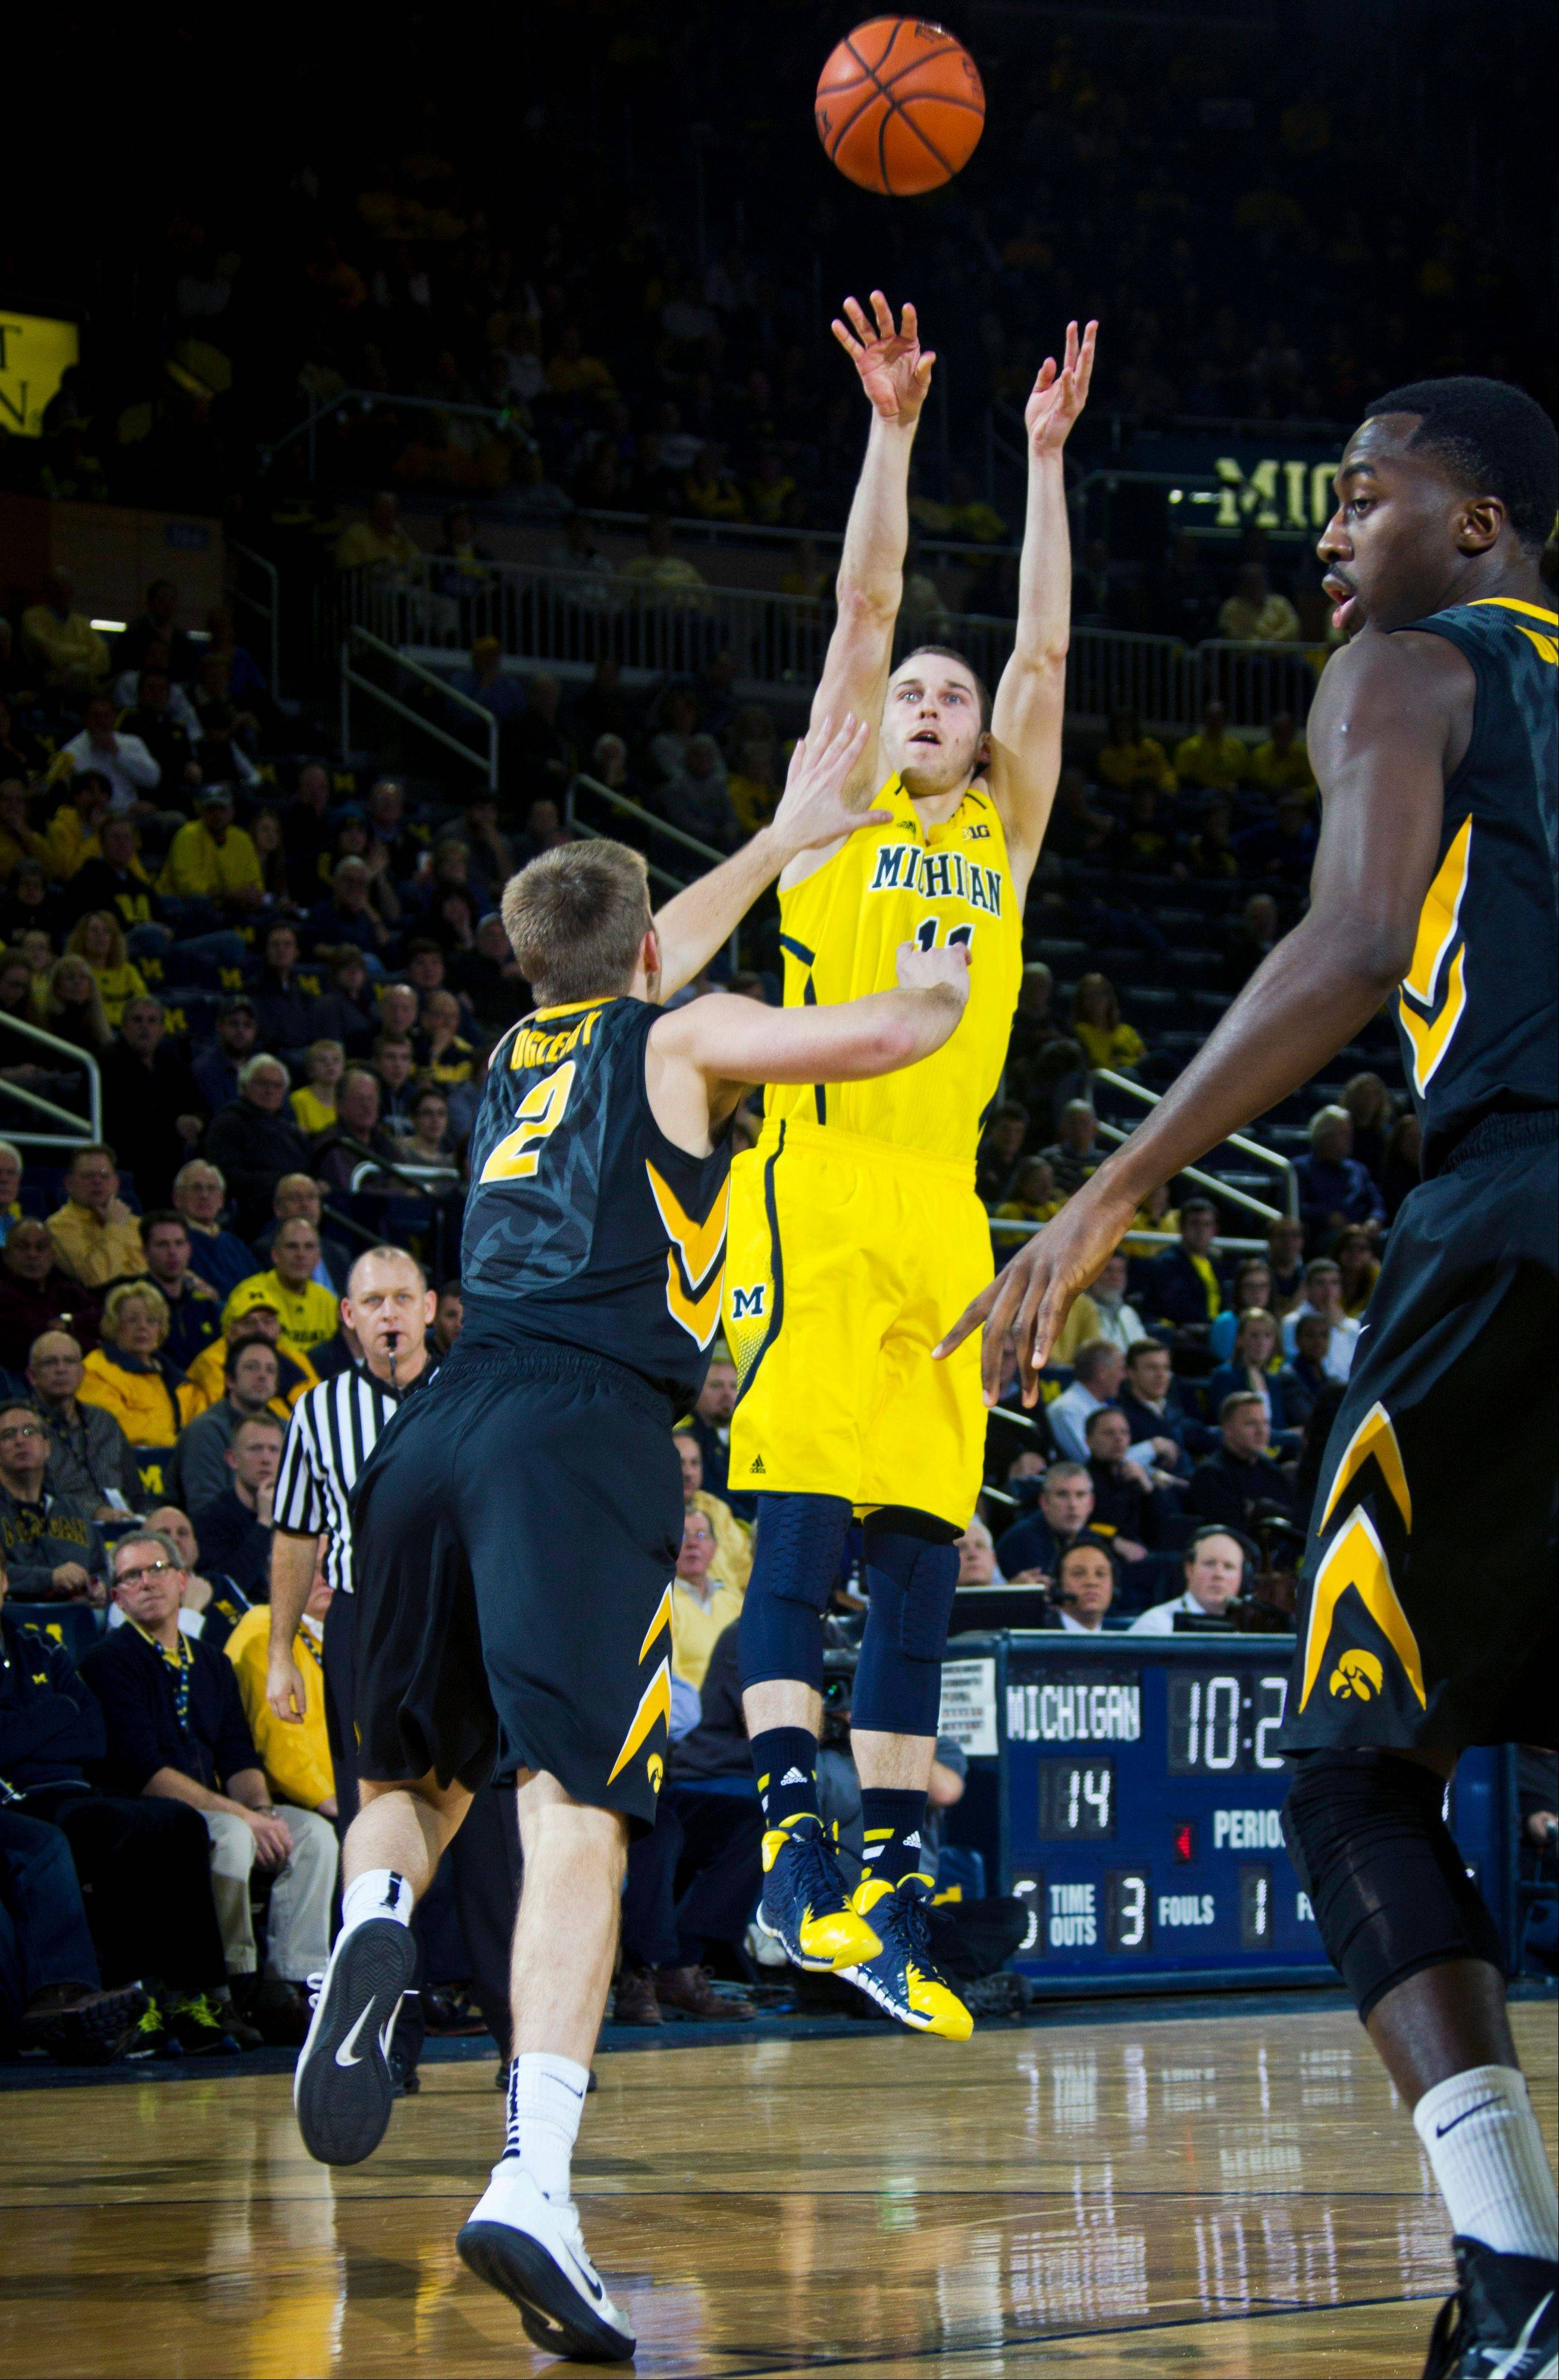 Iowa guard Josh Oglesby (2) defends a 3-pointer from Michigan guard Nik Stauskas in the first half of an NCAA college basketball game in Ann Arbor, Mich., Wednesday, Jan. 22, 2014.